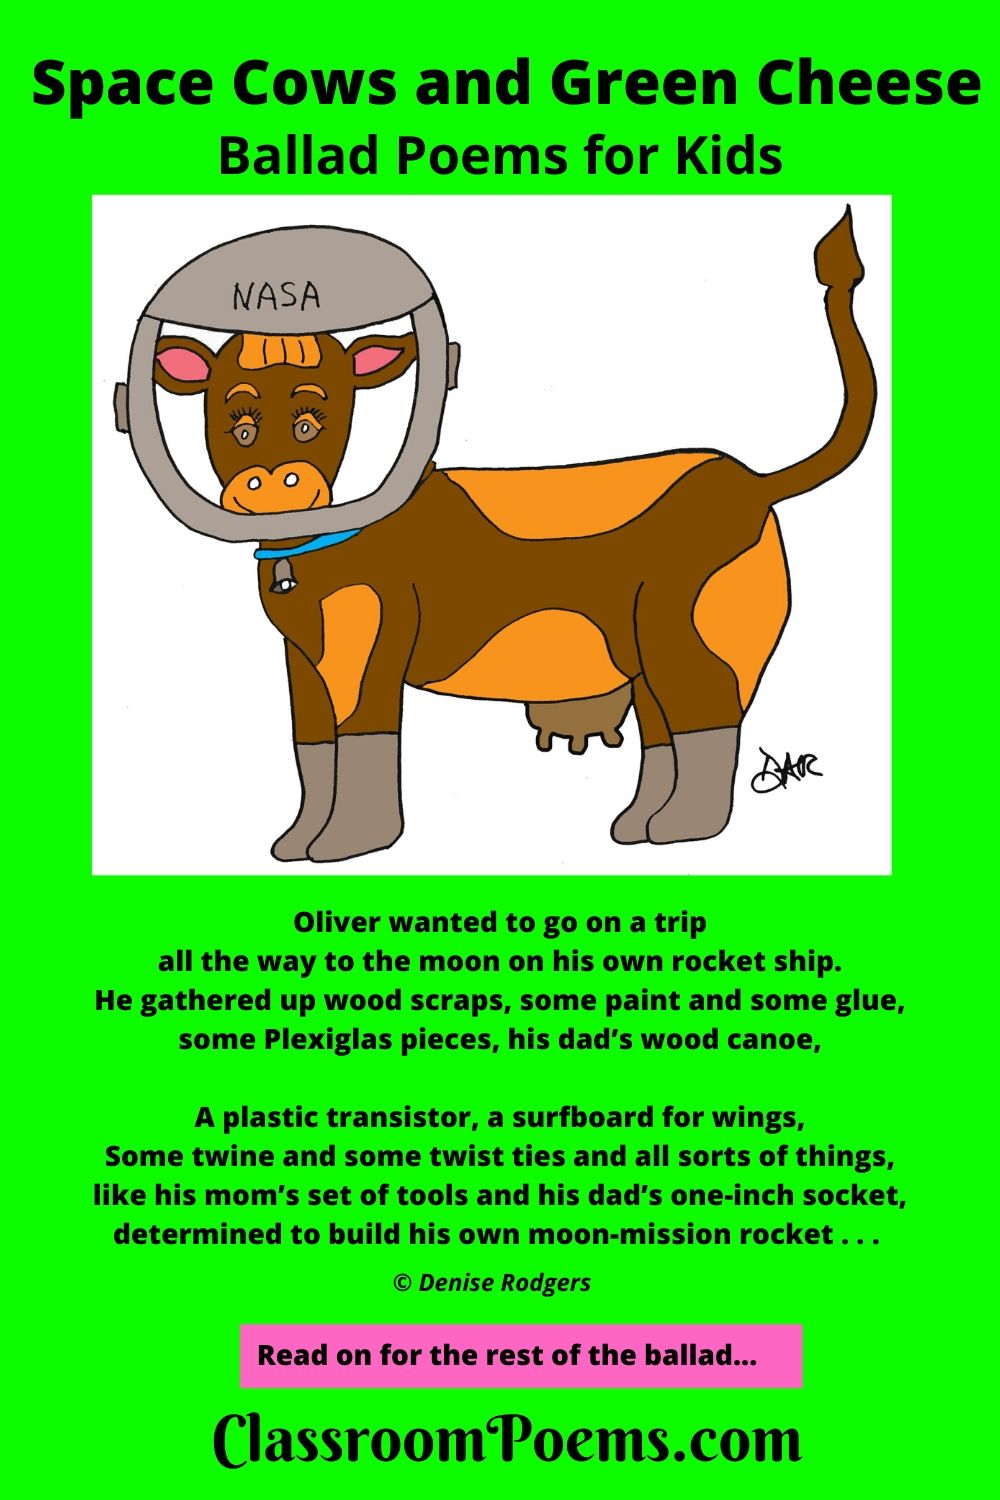 Space cow. Space cow poem. Space cow ballad for kids on ClassroomPoems.com.